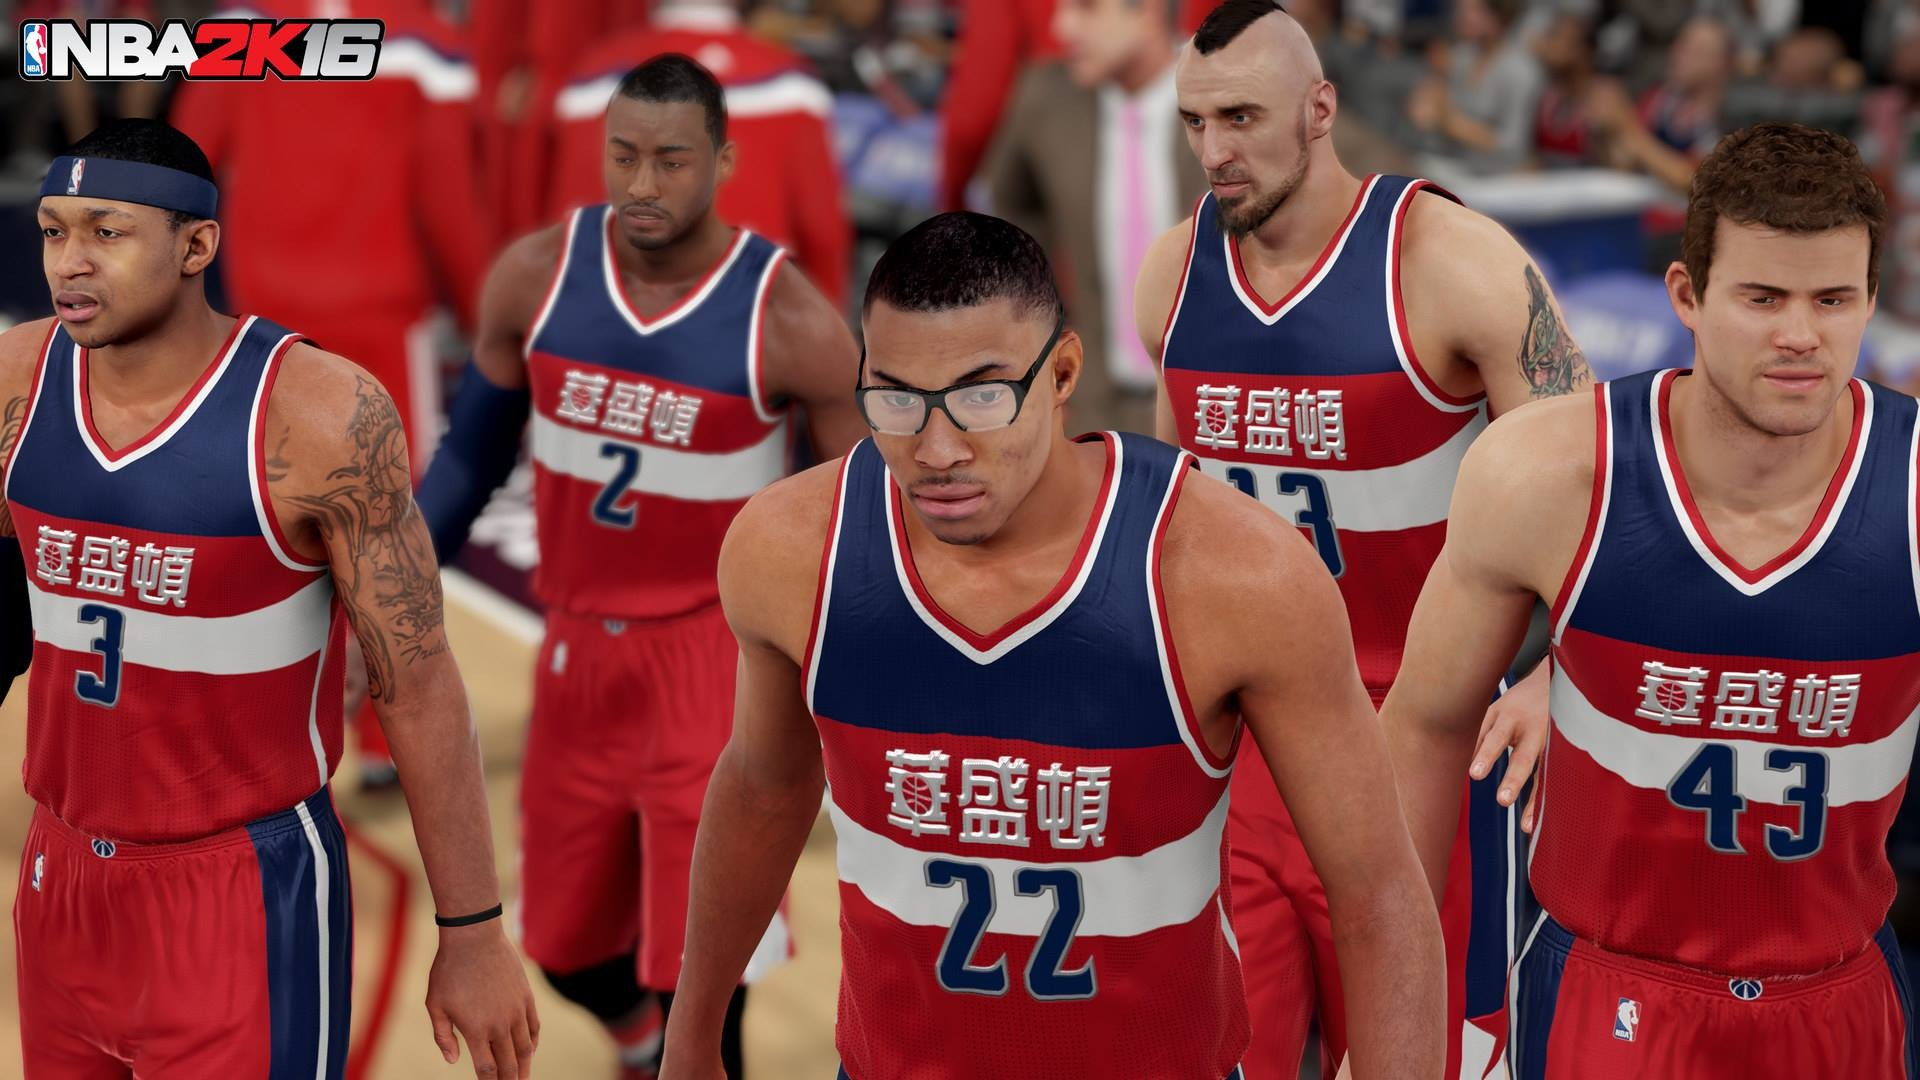 More Uniforms Added to NBA 2K16 - (Suns, Bulls, Knicks, Grizz, Nets ...